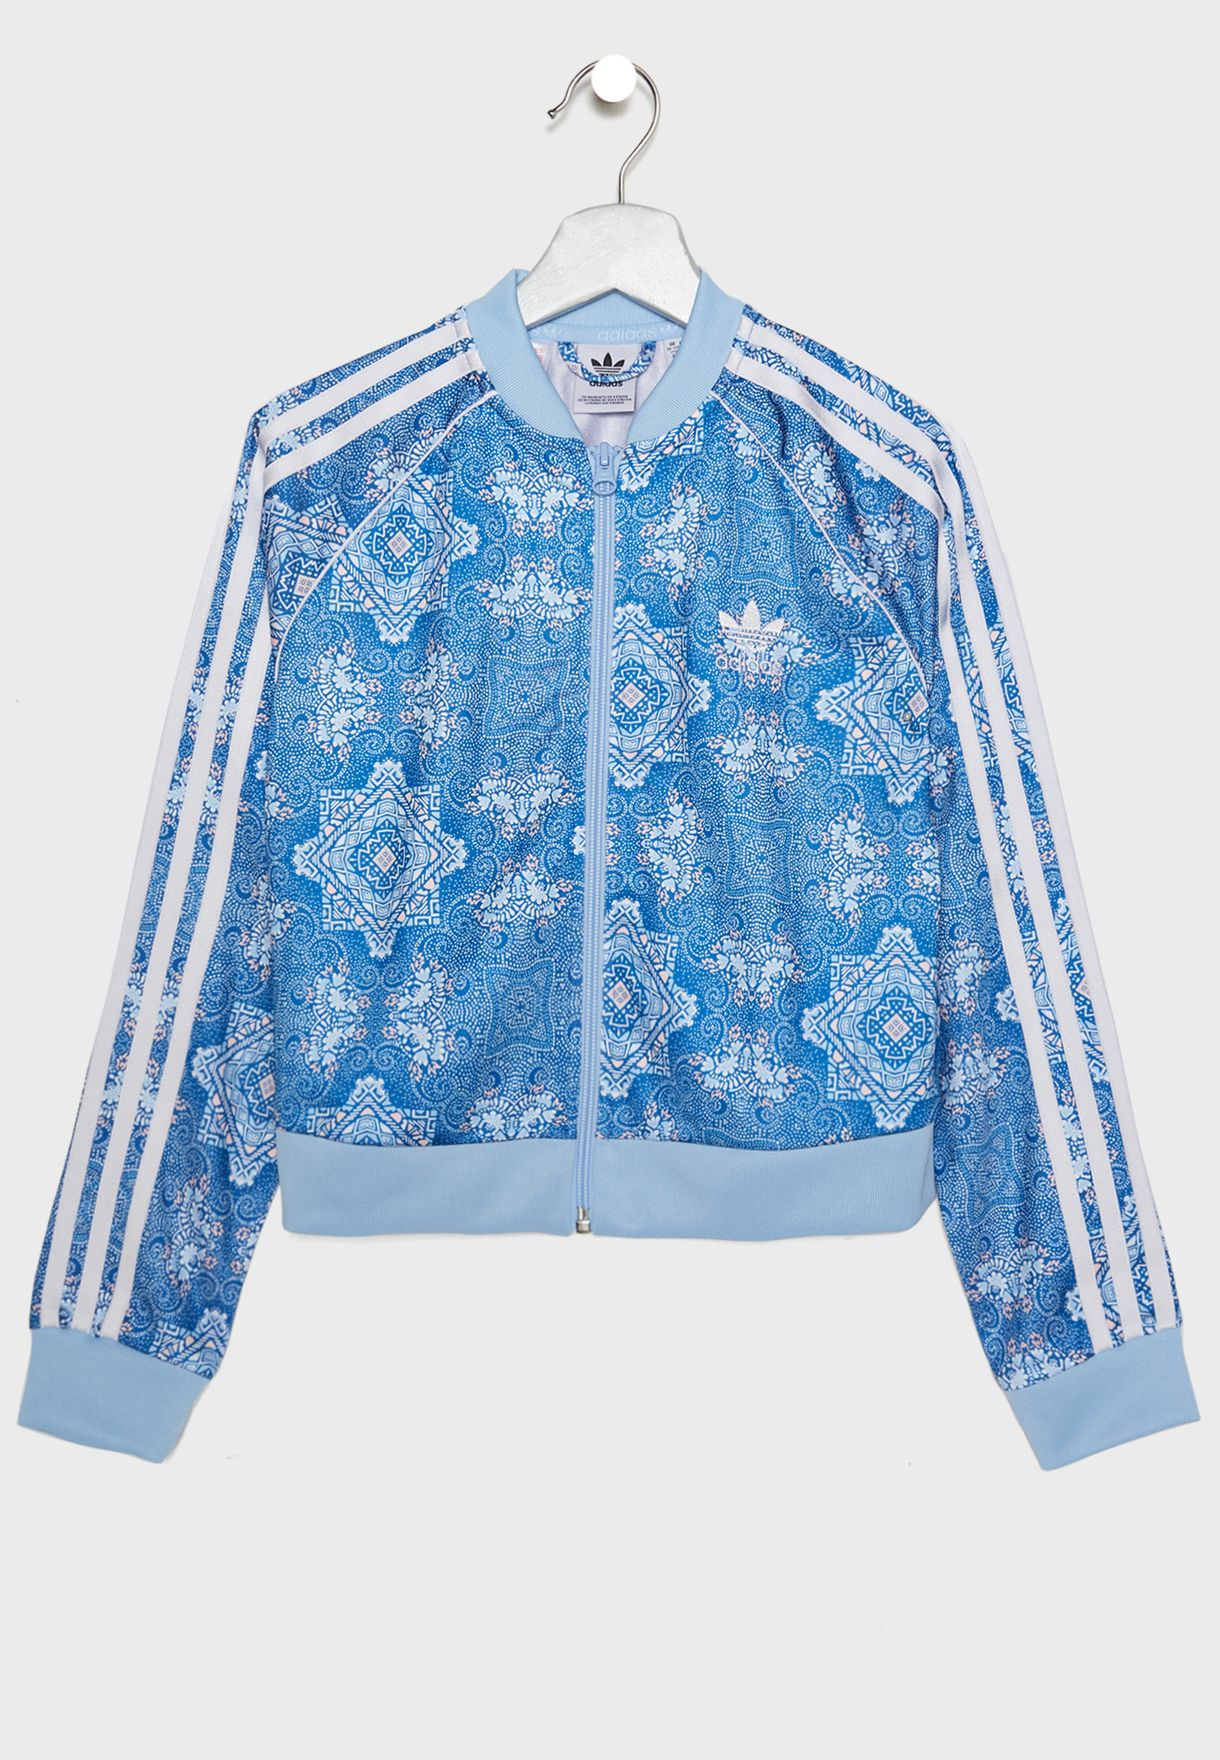 Youth Culture Clash Track Jacket